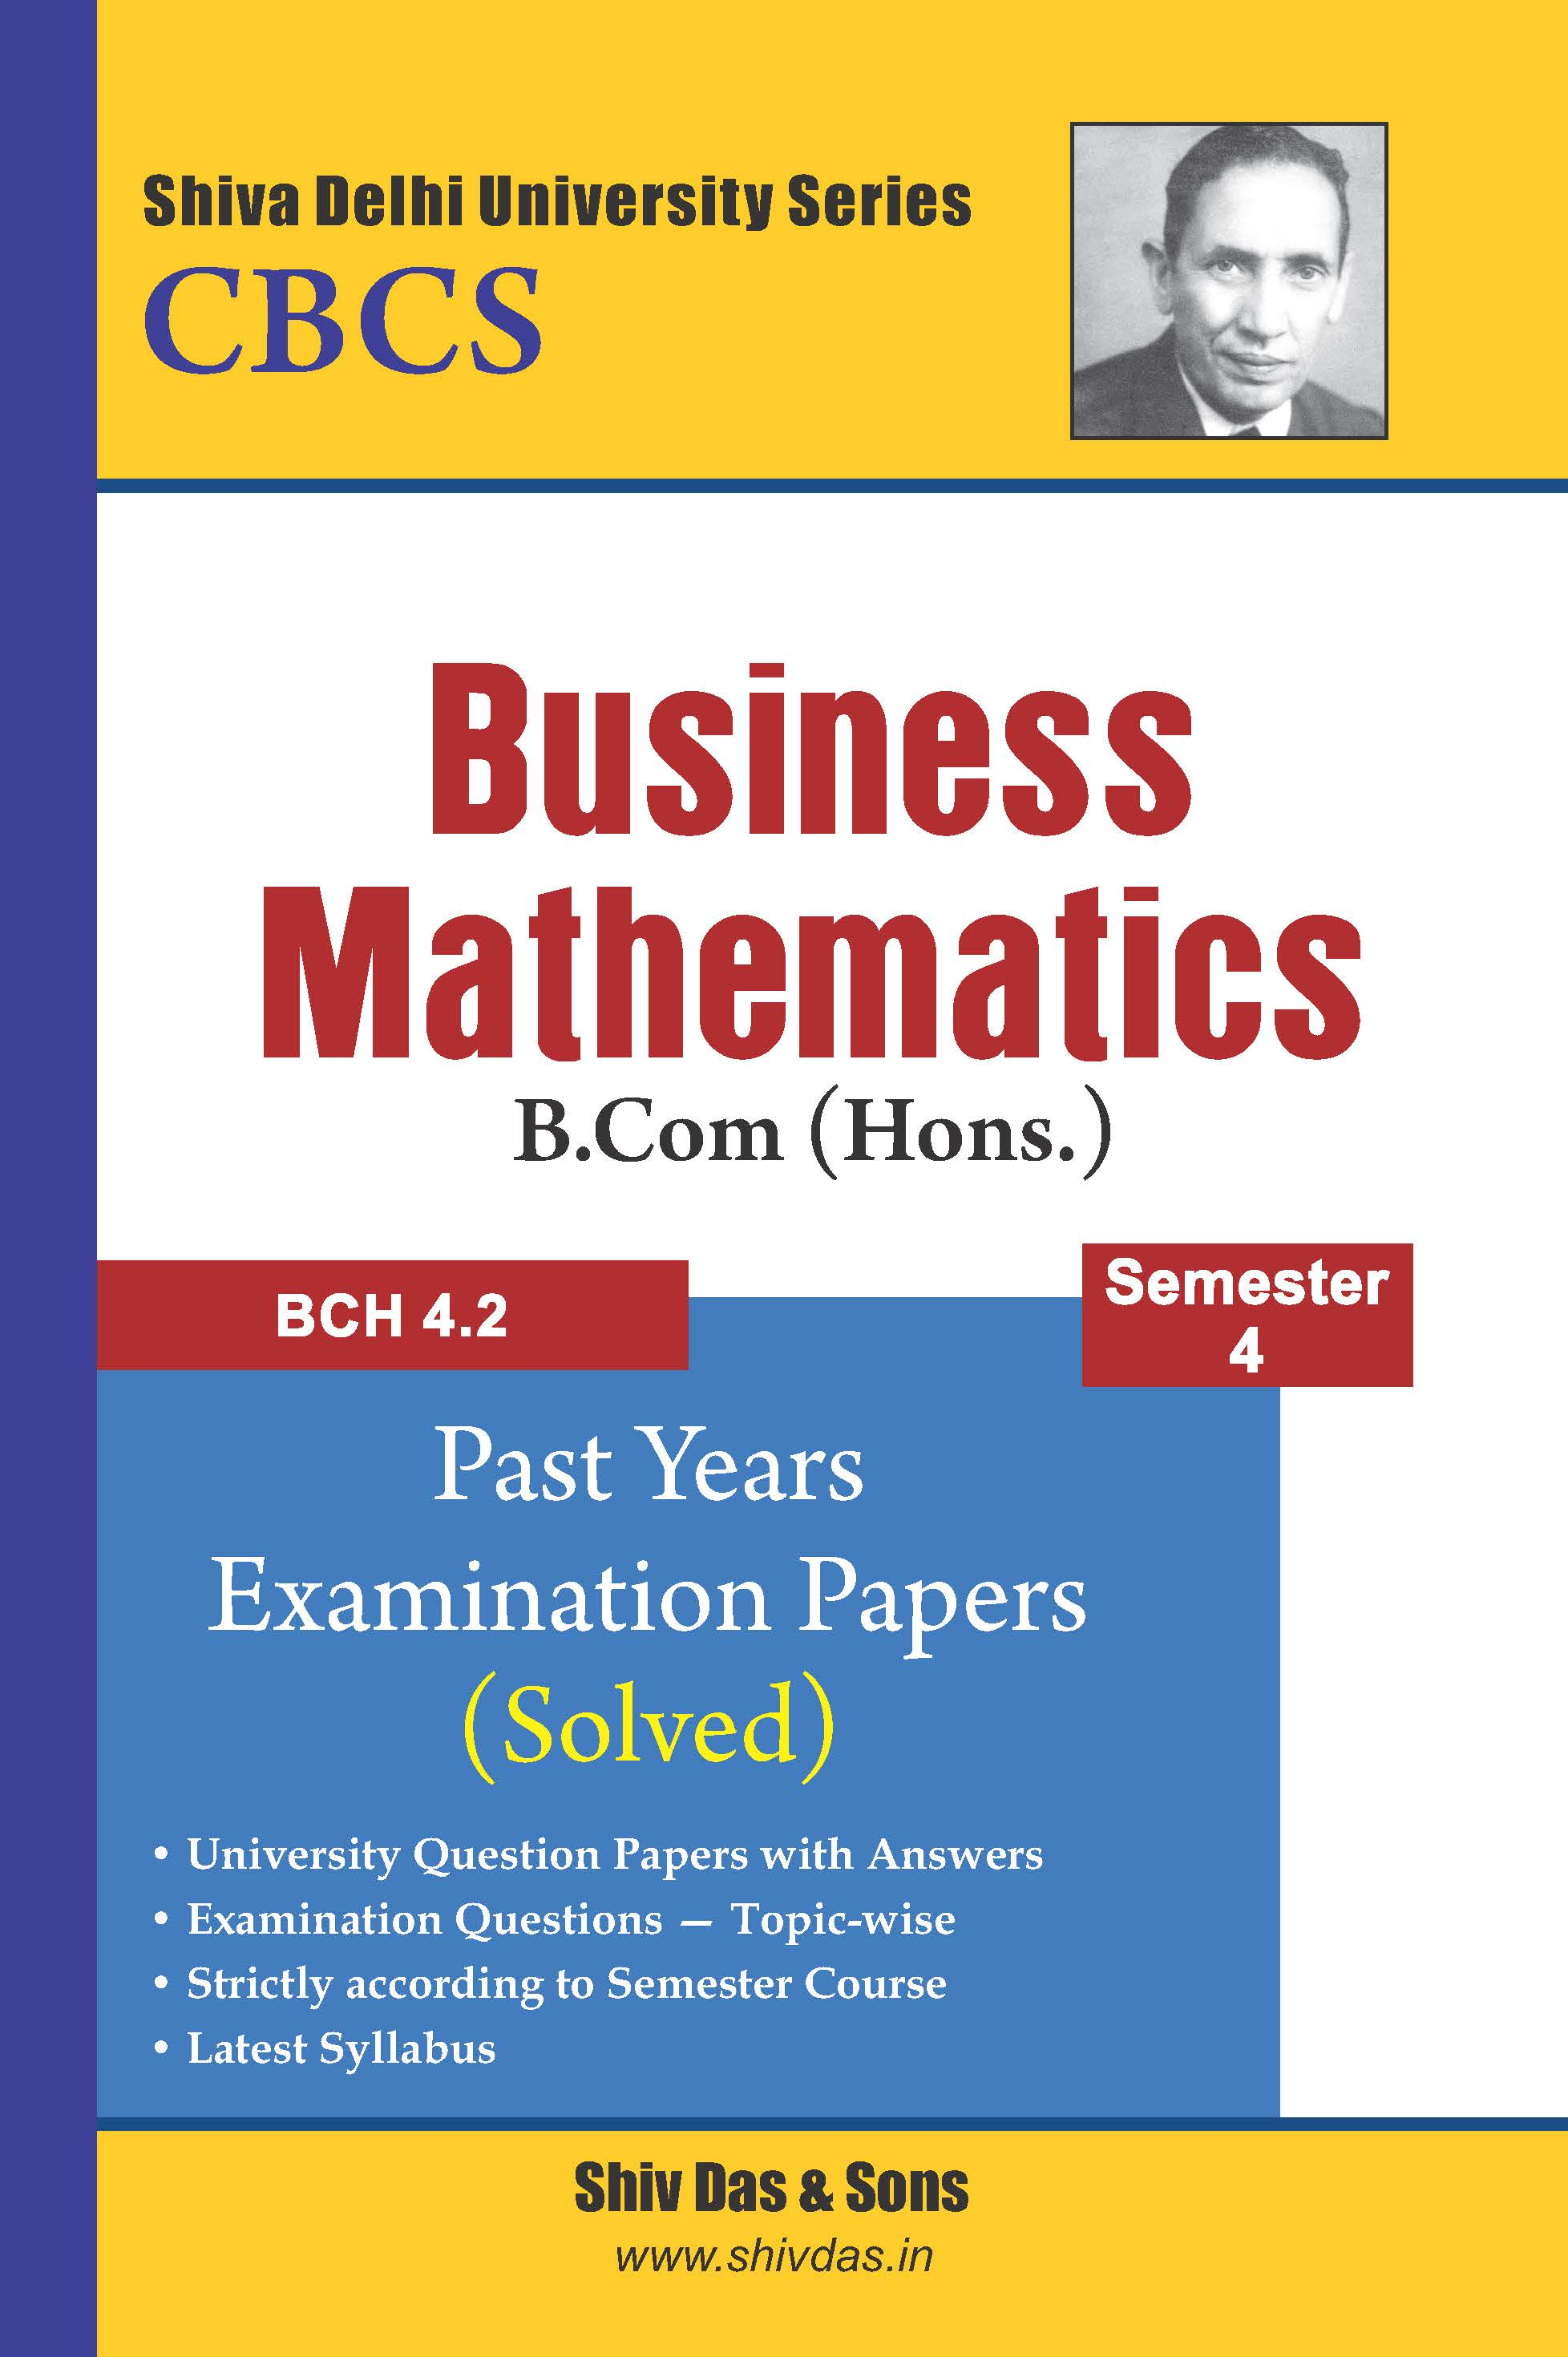 B.Com Hons. Semester-4 Business Mathematics